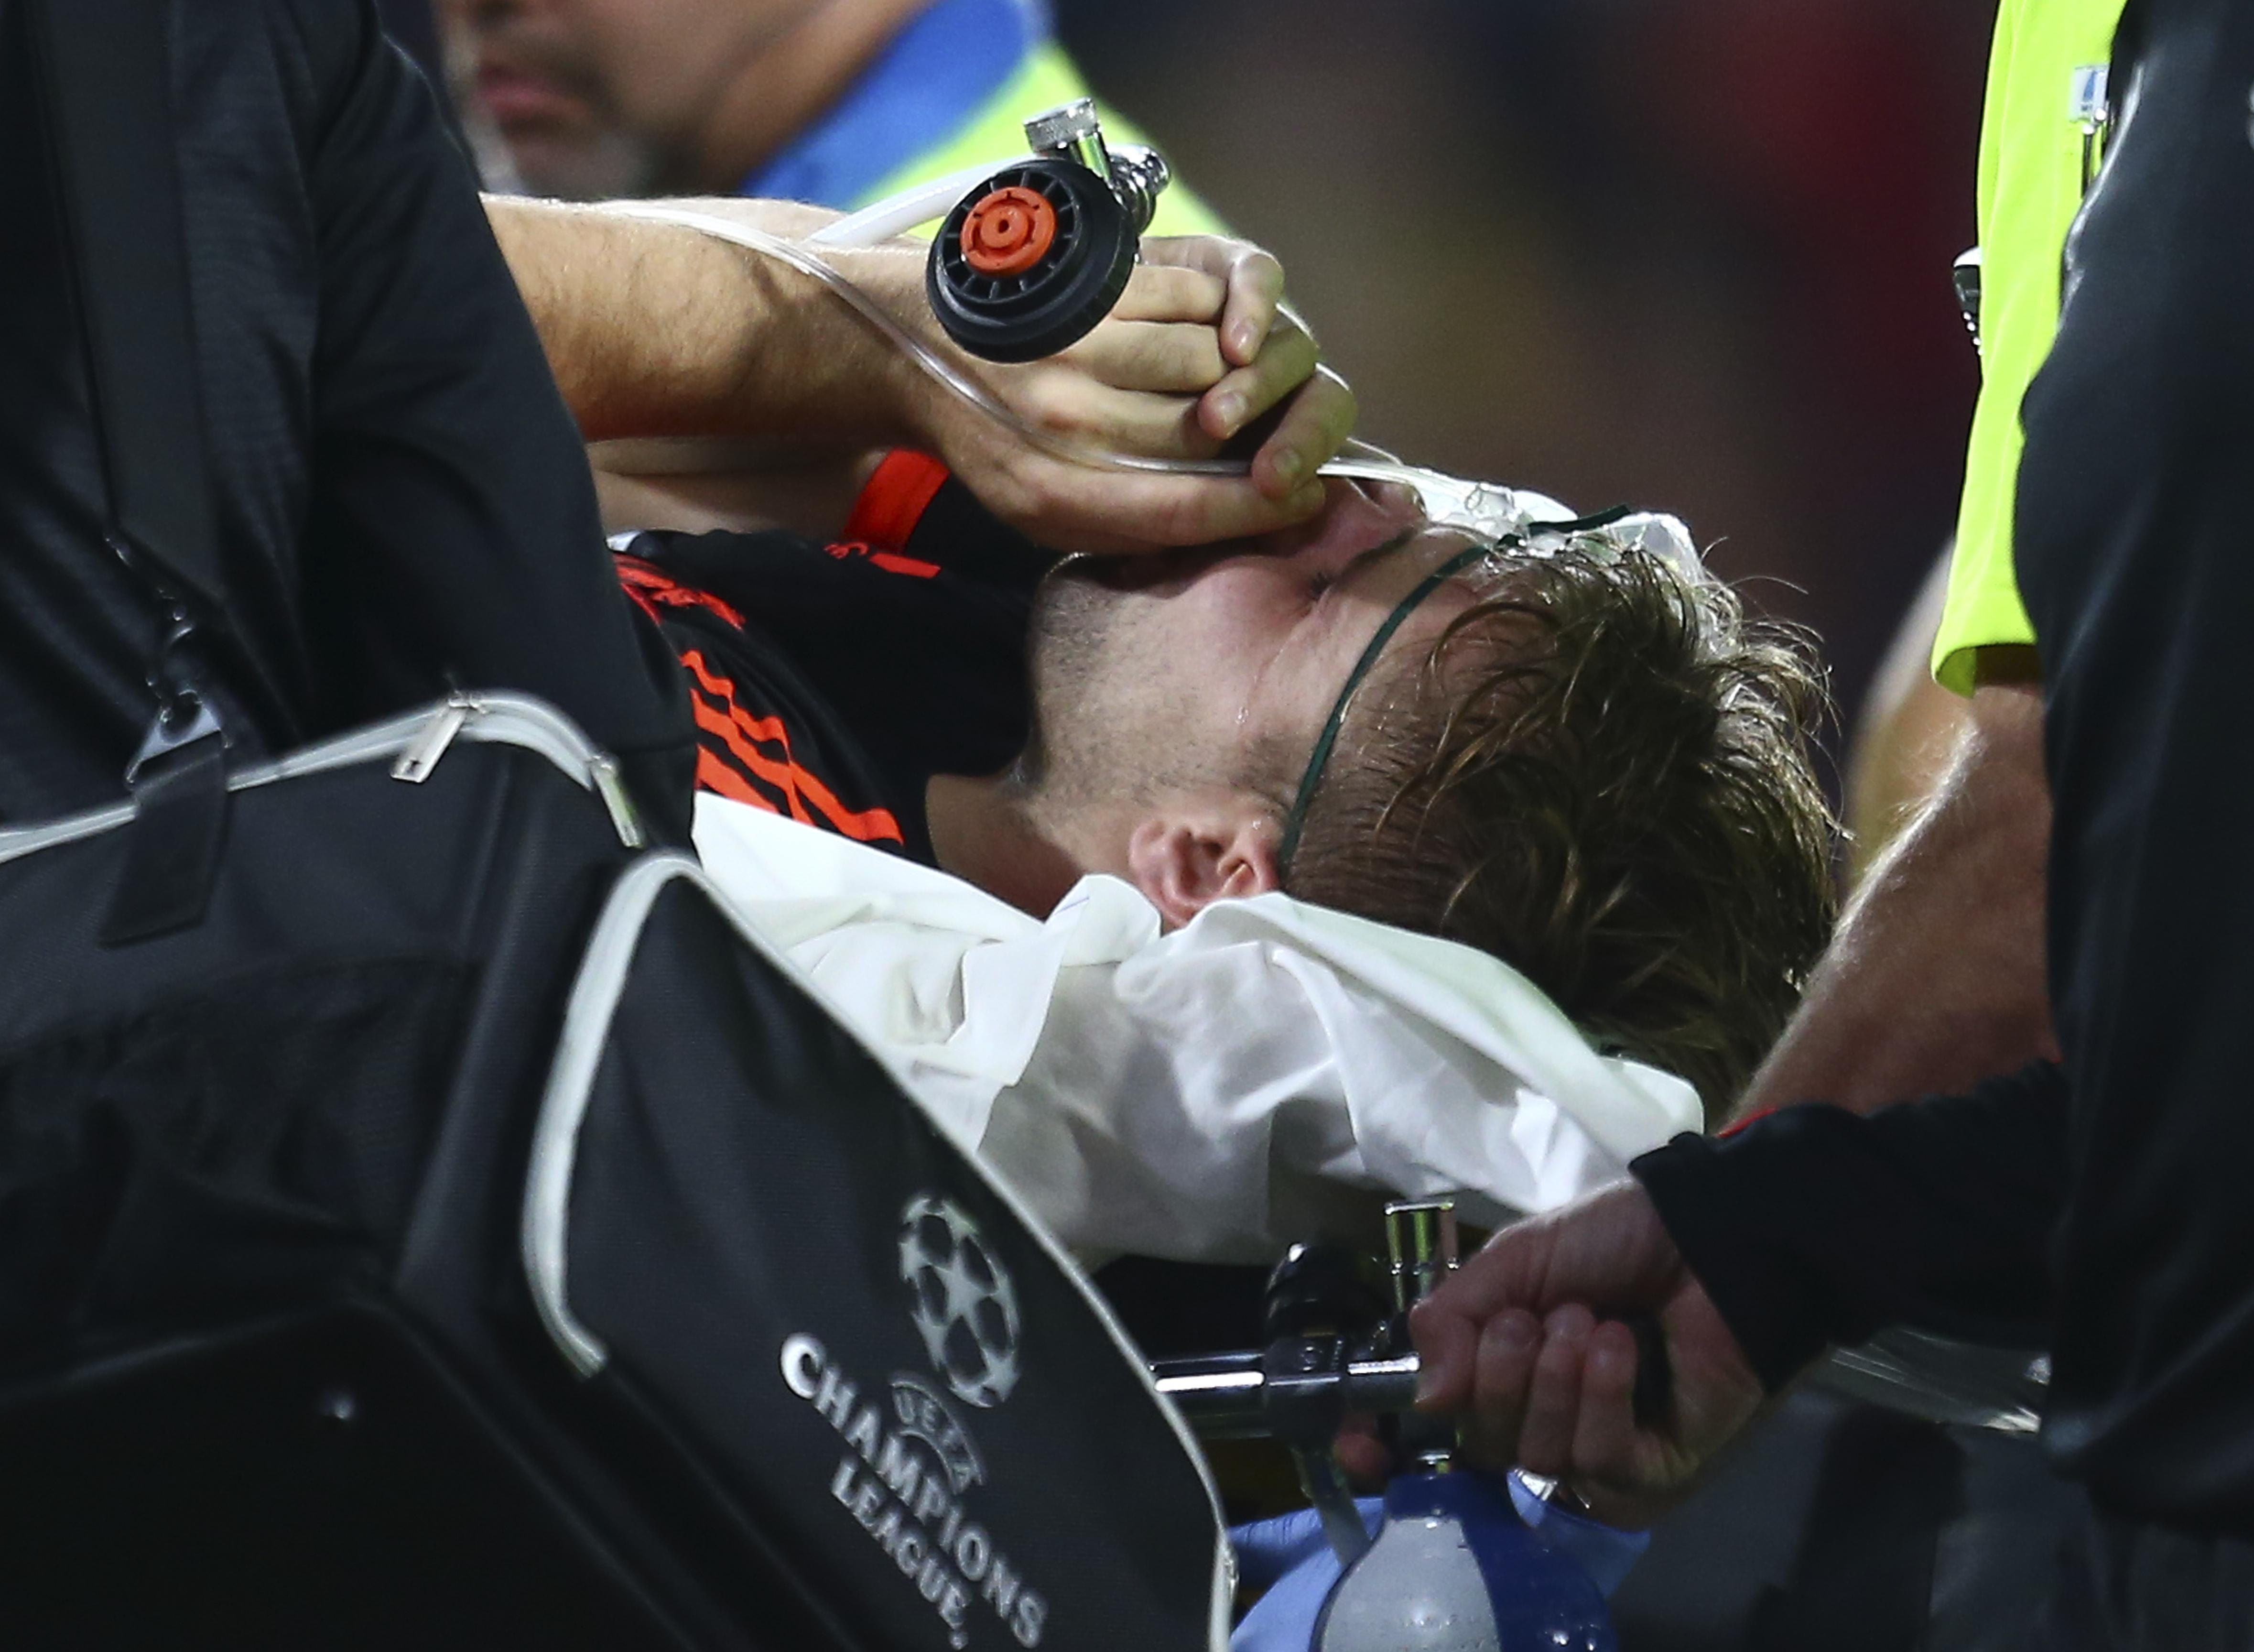 Shaw was sidelined for 11 months